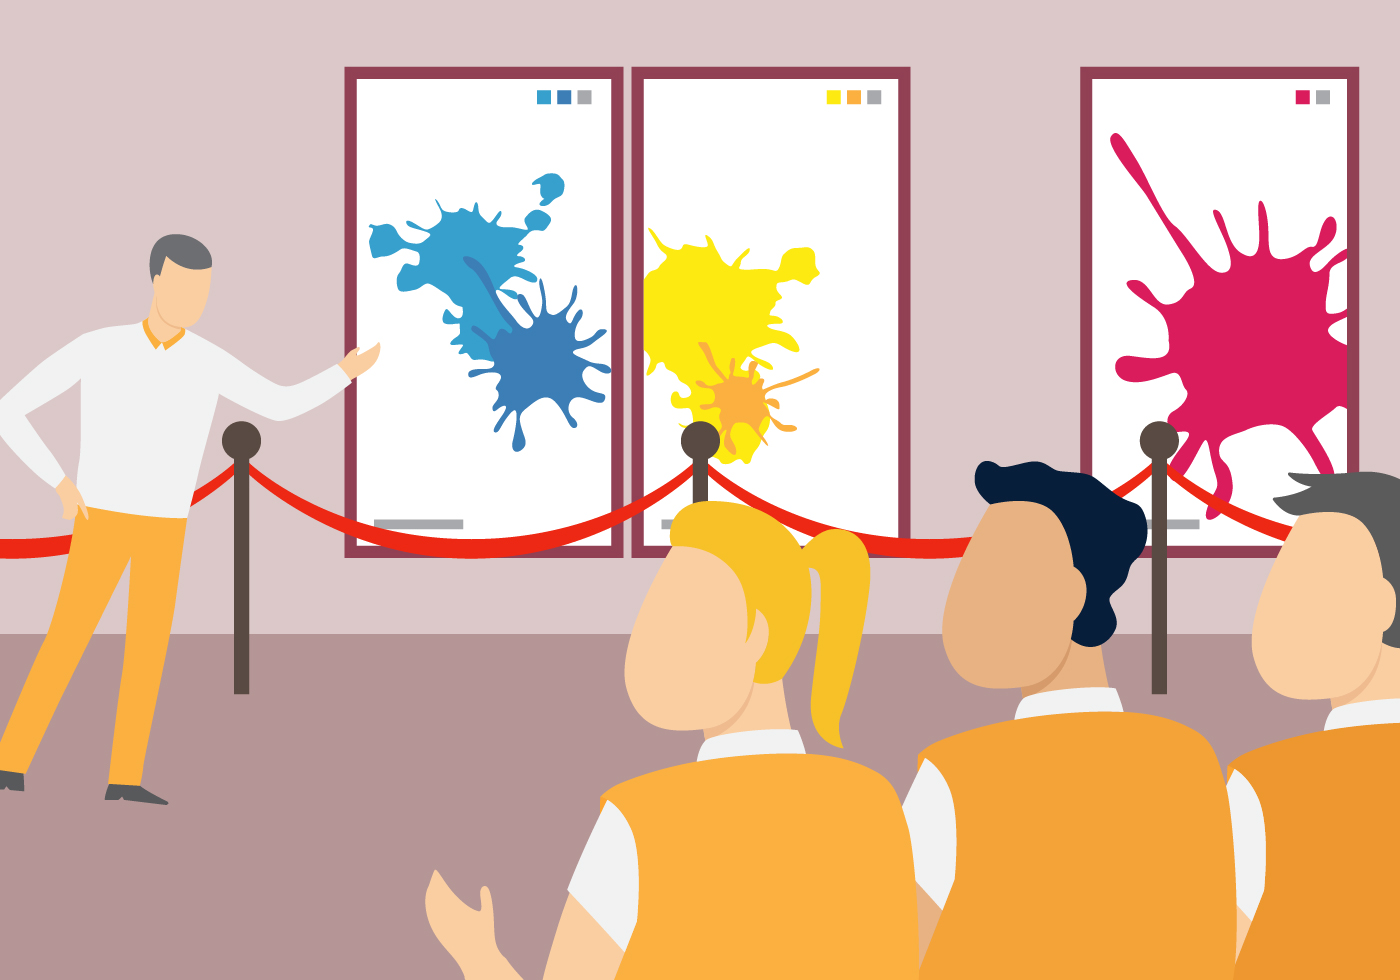 Exhibition Hall Free Vector Art.